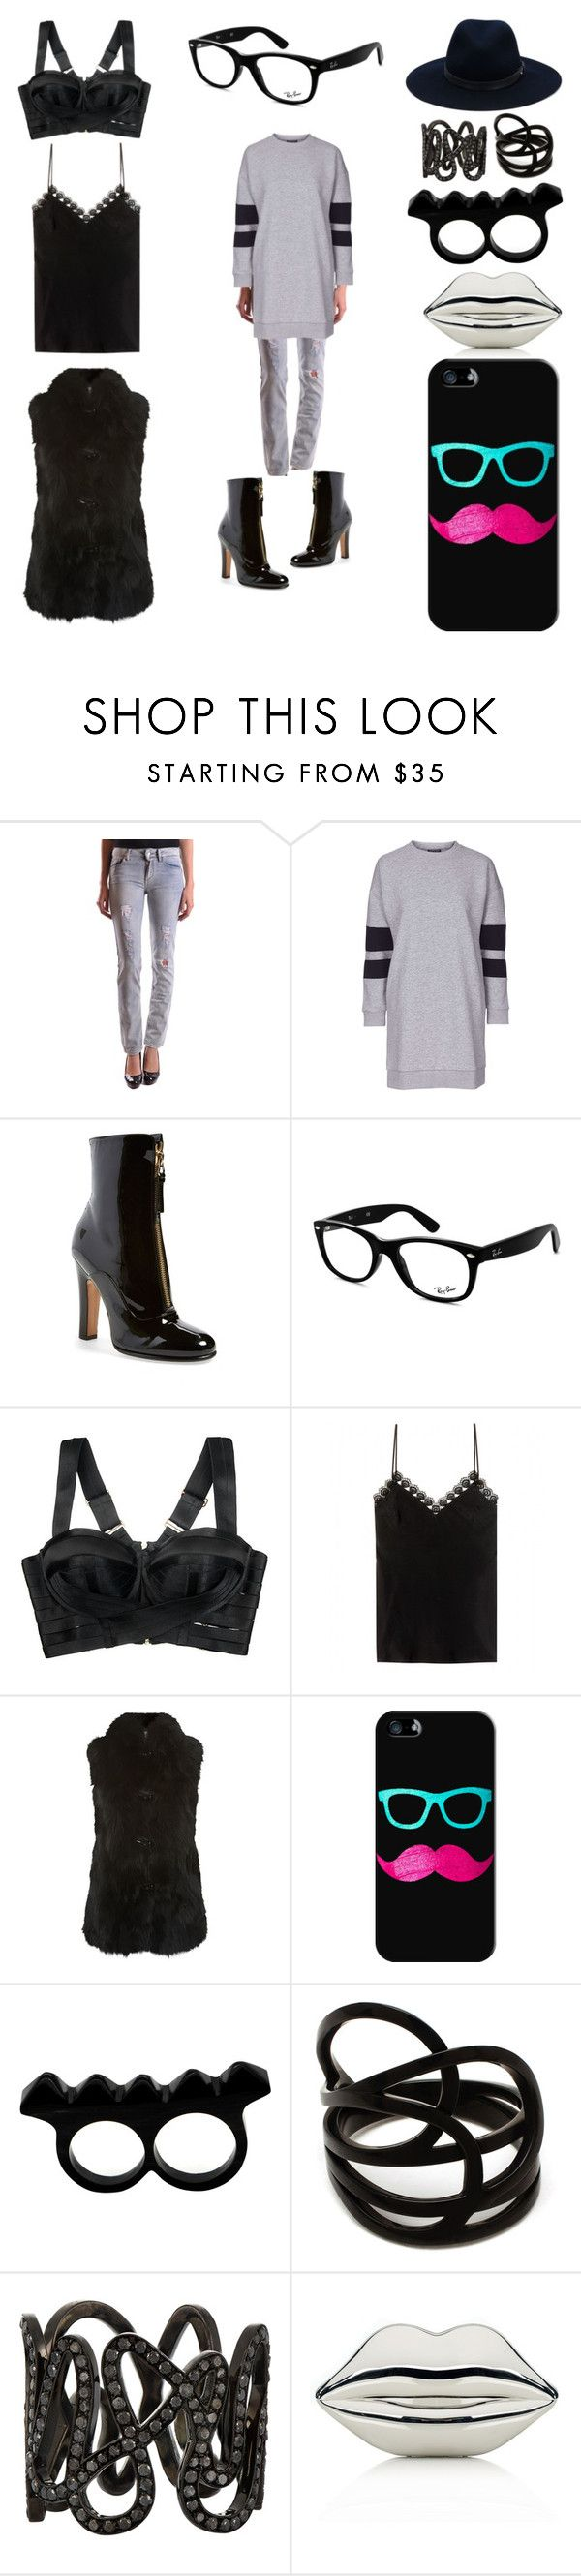 """""""Tirana, Albania"""" by creation-gallery on Polyvore featuring LIU•JO, Topshop, Valentino, Ray-Ban, Bordelle, Alexander McQueen, M. Miller, Casetify, L'Artisan Créateur and Repossi"""